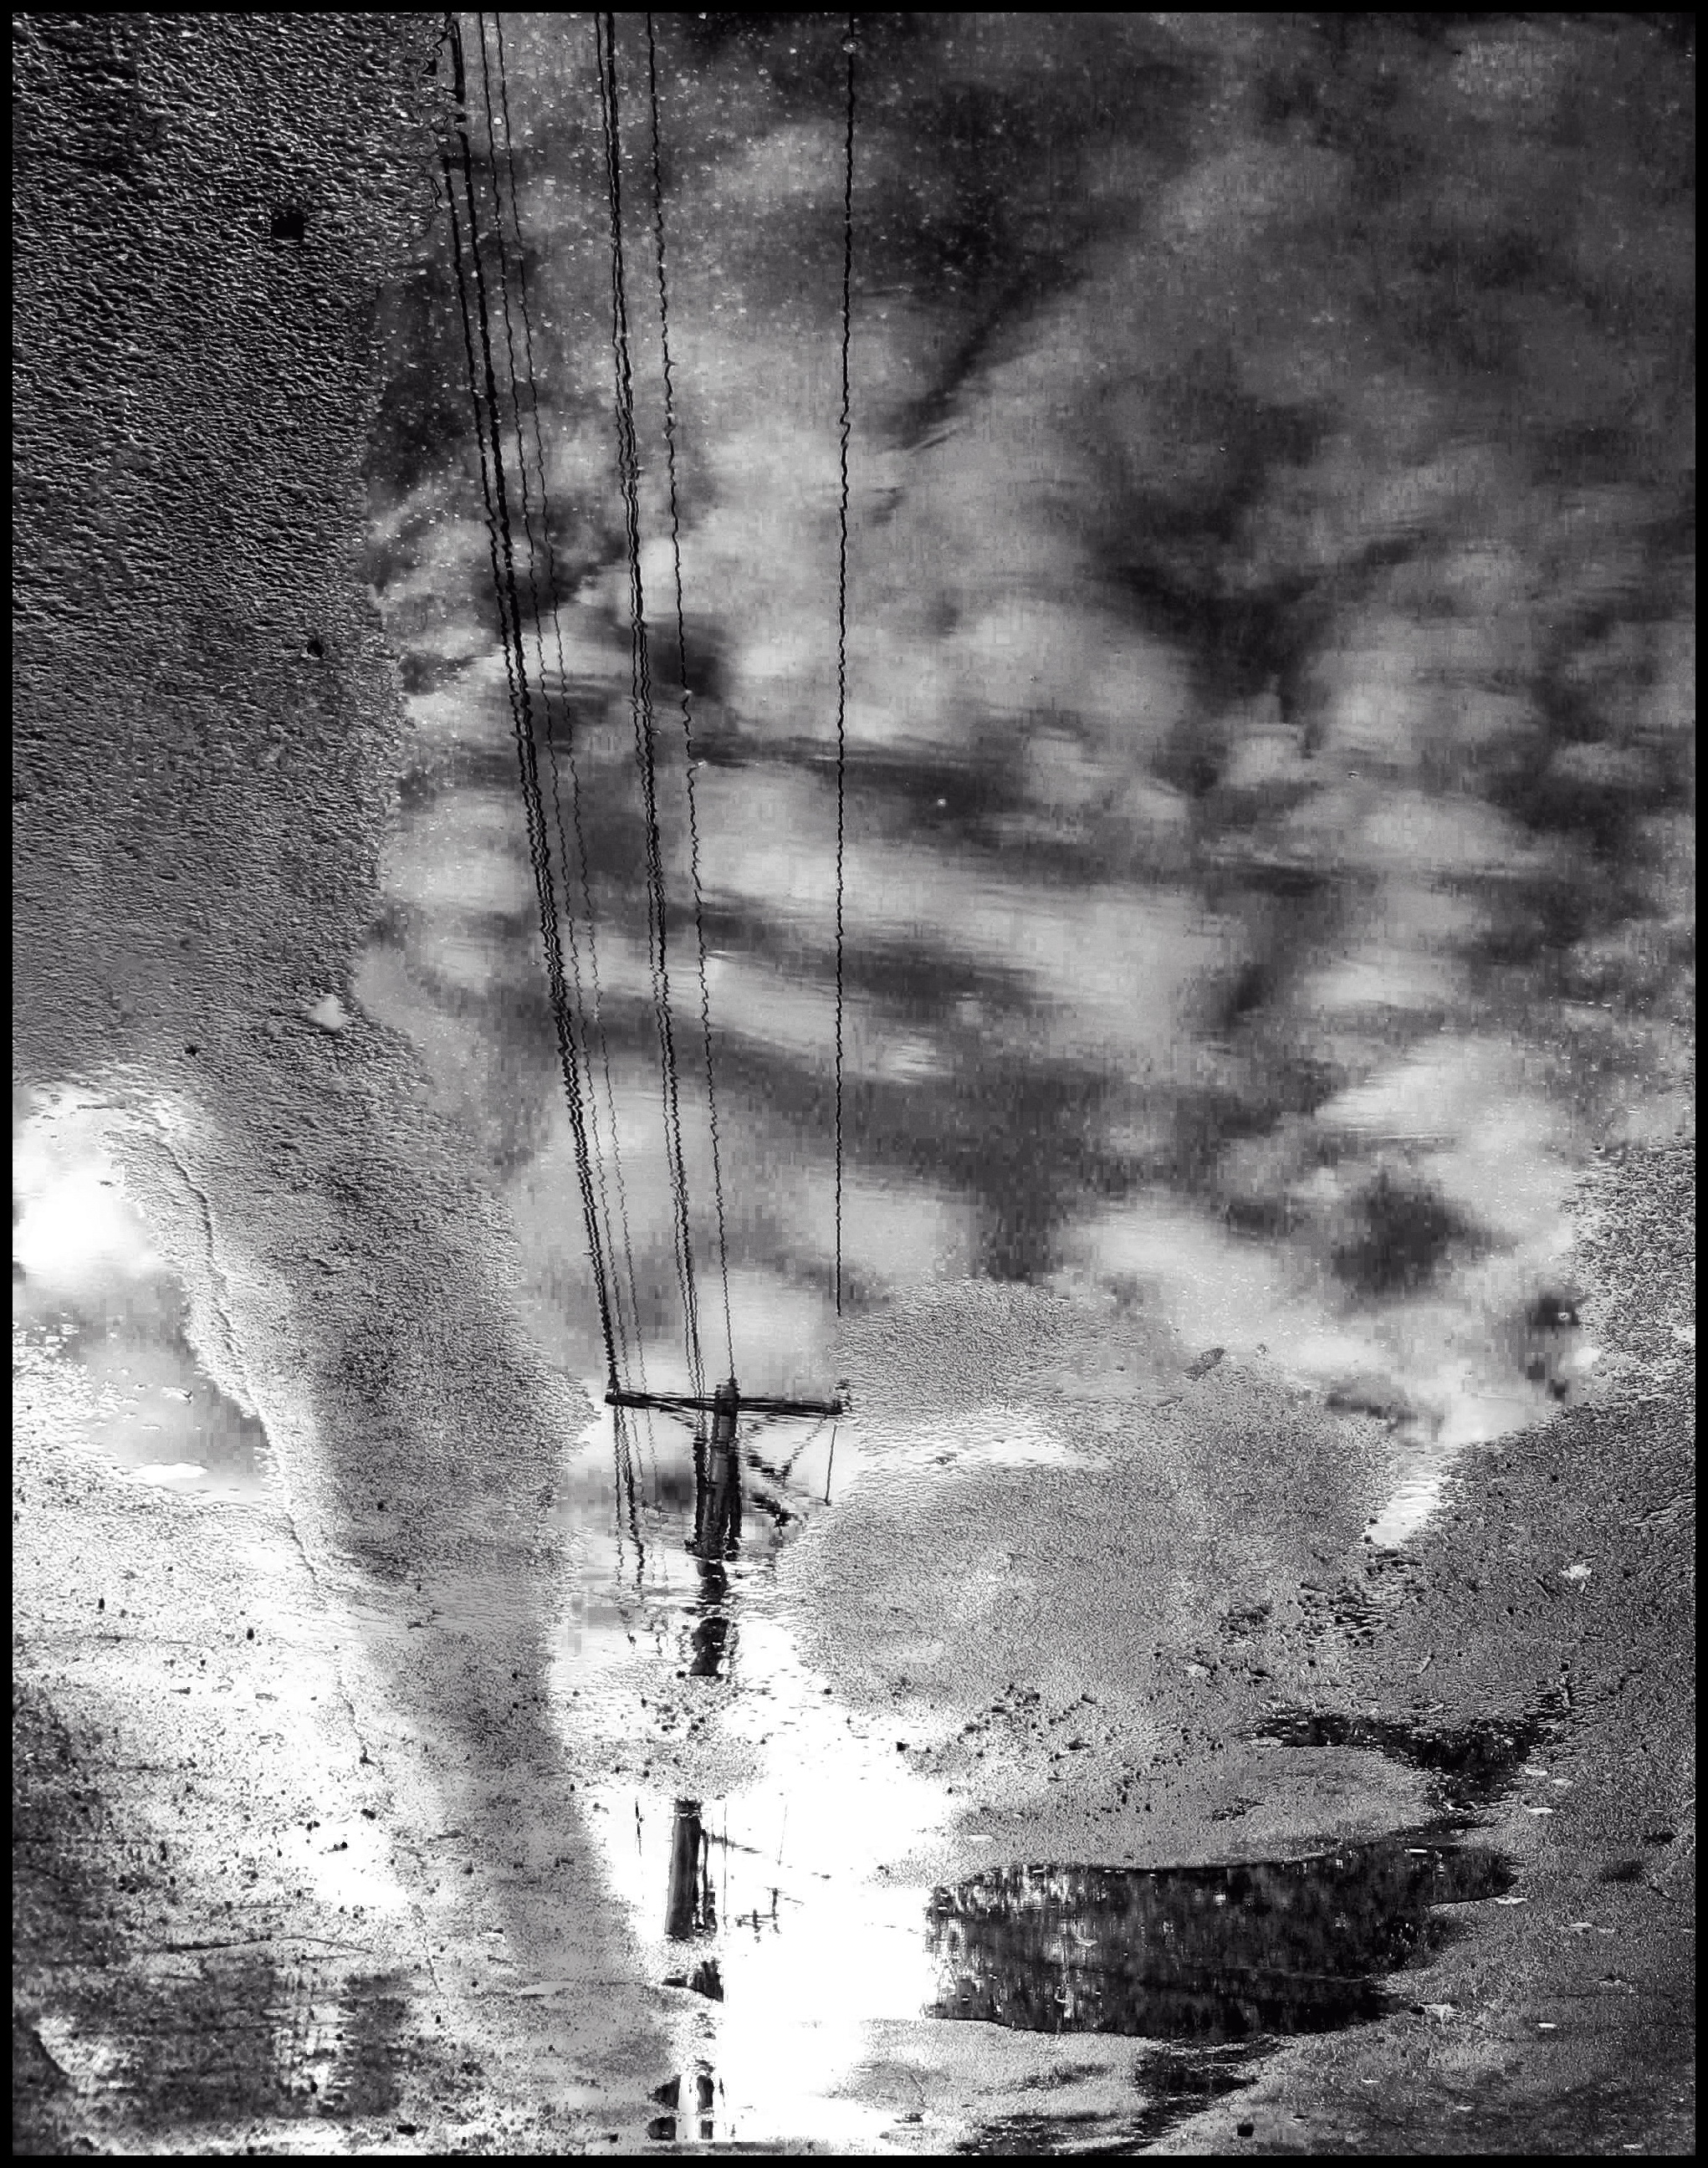 Telephone Pole Reflected In Puddle_edited-1.jpg